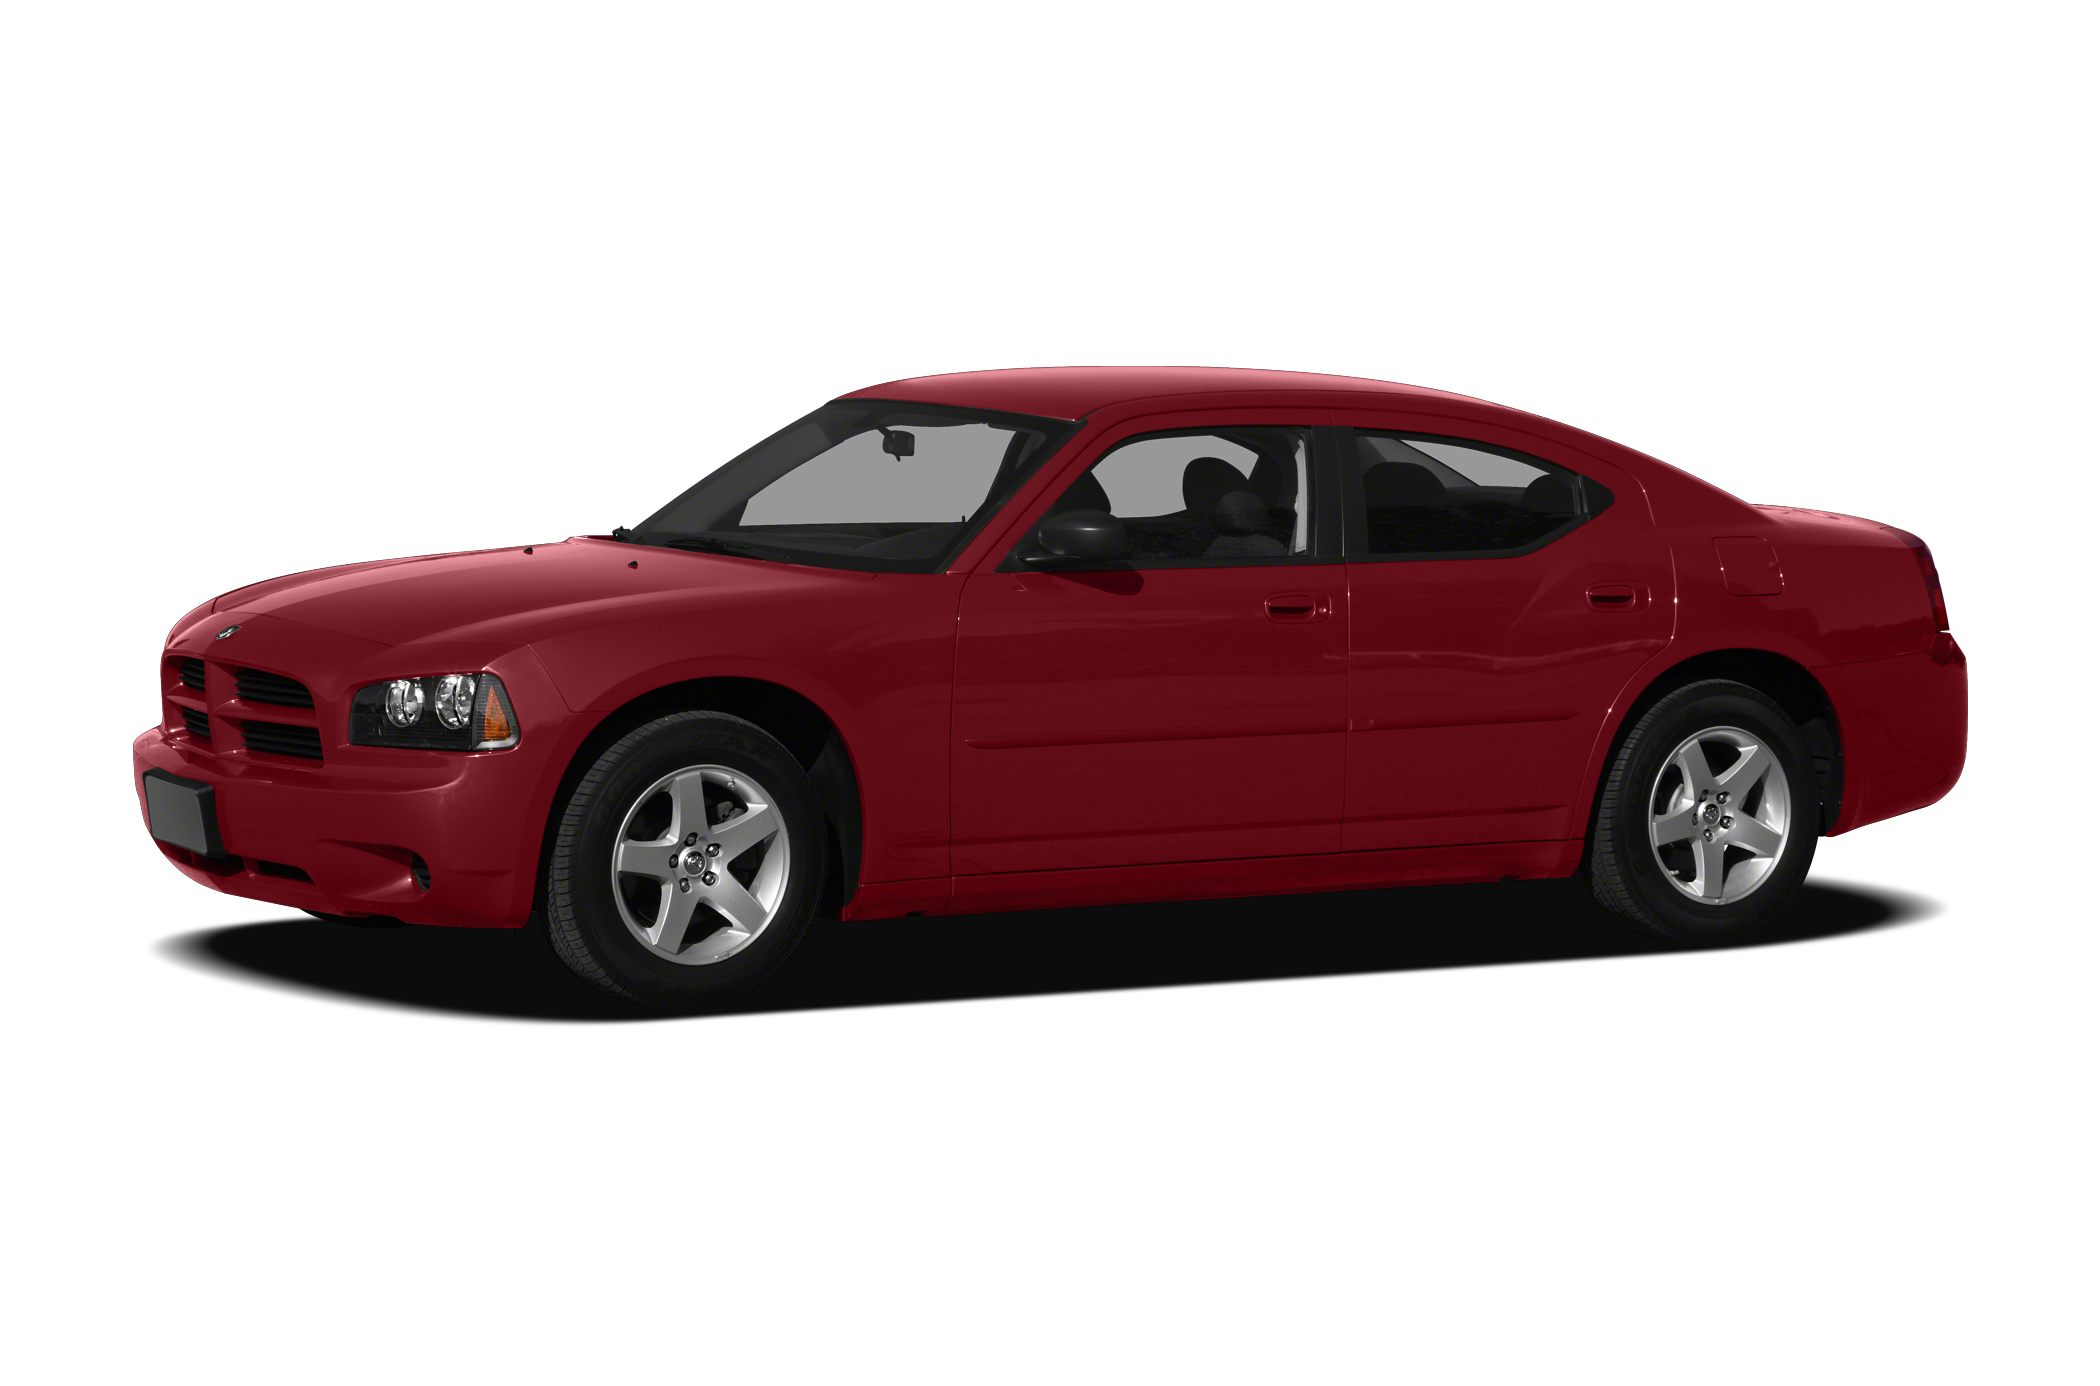 2009 Dodge Charger Sedan for sale in Dayton for $10,599 with 117,480 miles.